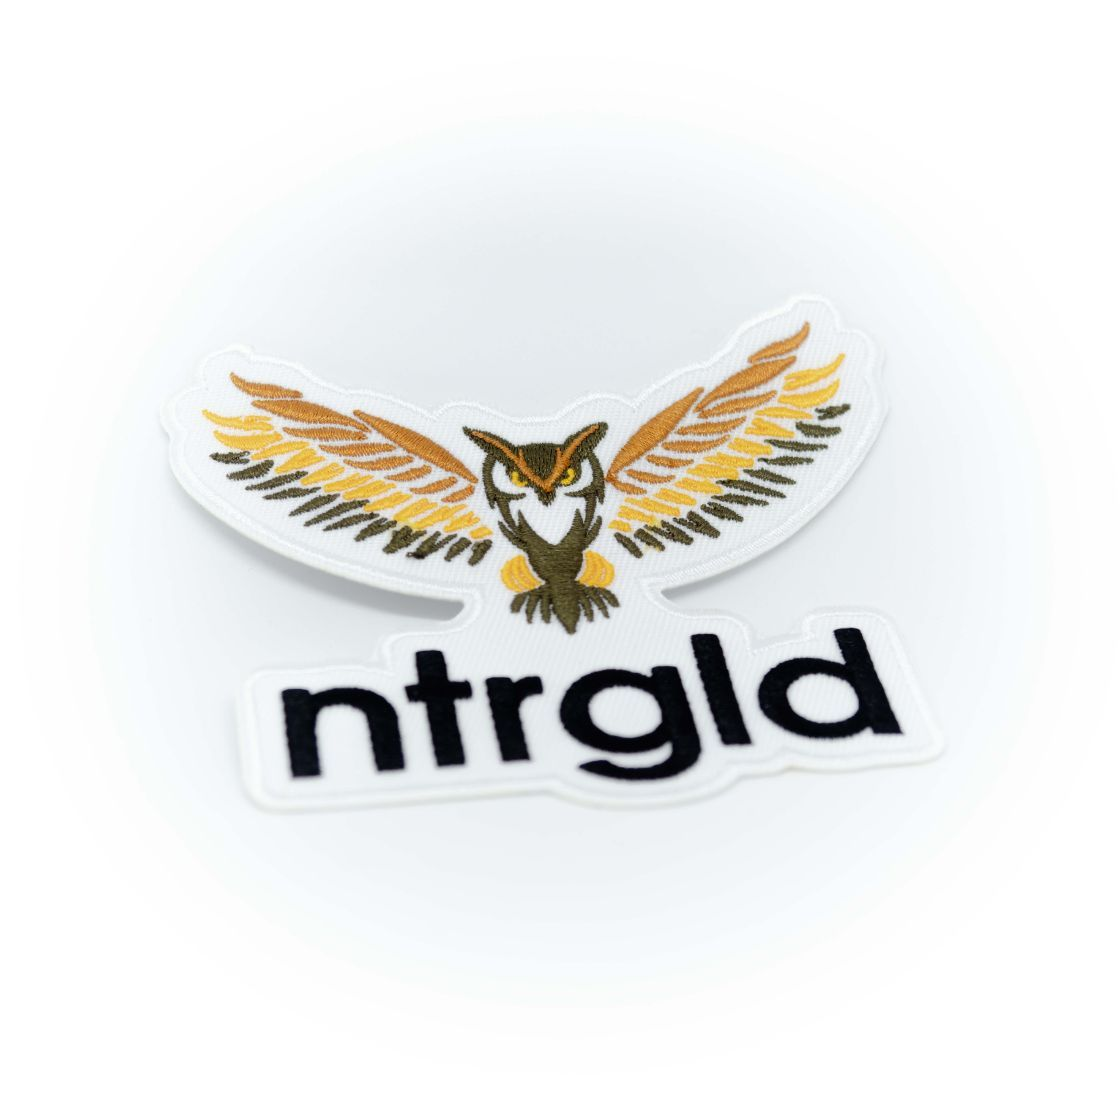 Neter Gold Brand Patches - Neter Gold NTRGLD Great Horned Owl - 4 * 3.5 in